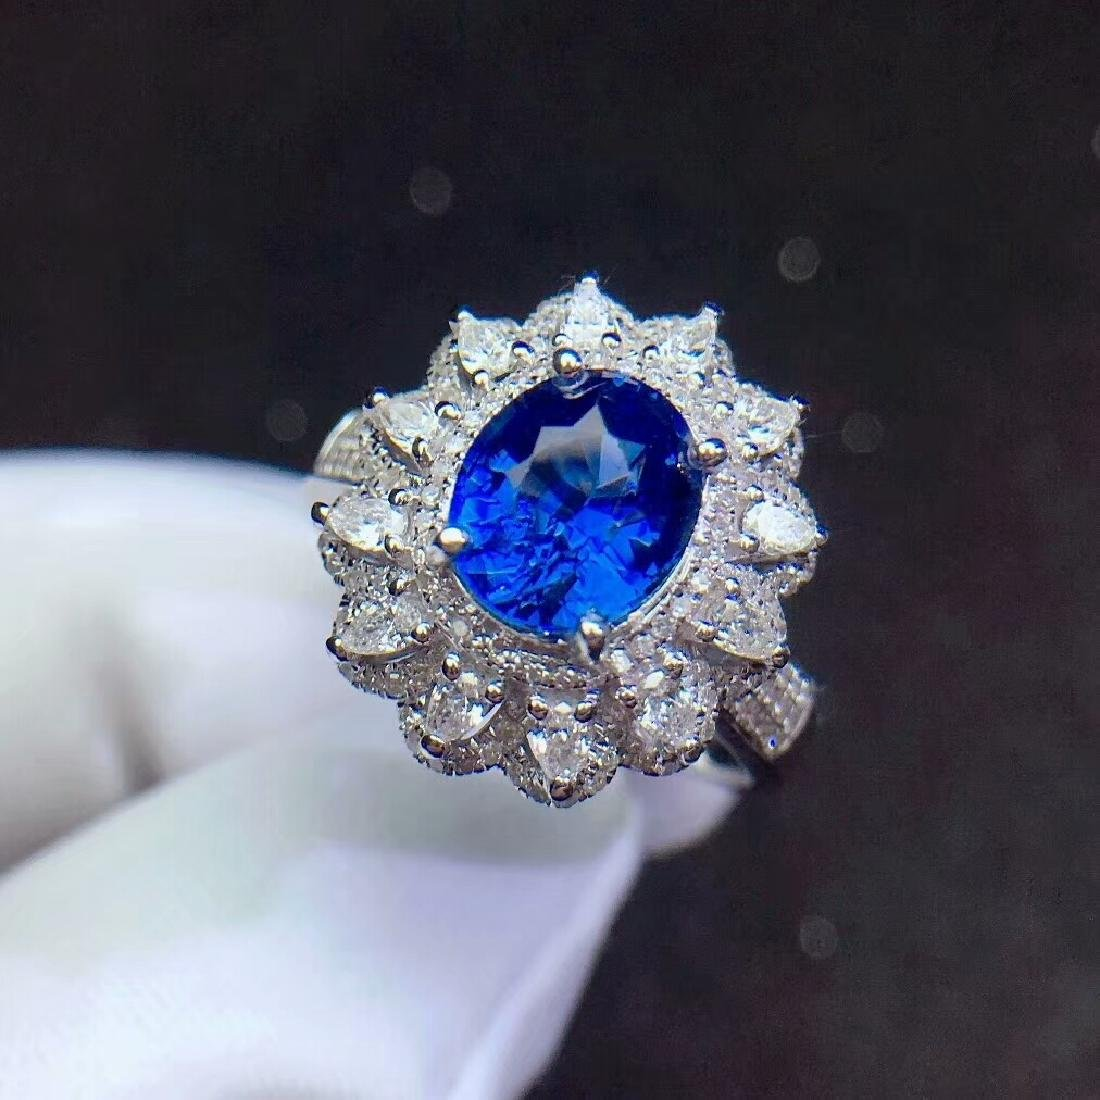 1.52ct Sapphire Ring in 18kt Rose Gold - 2